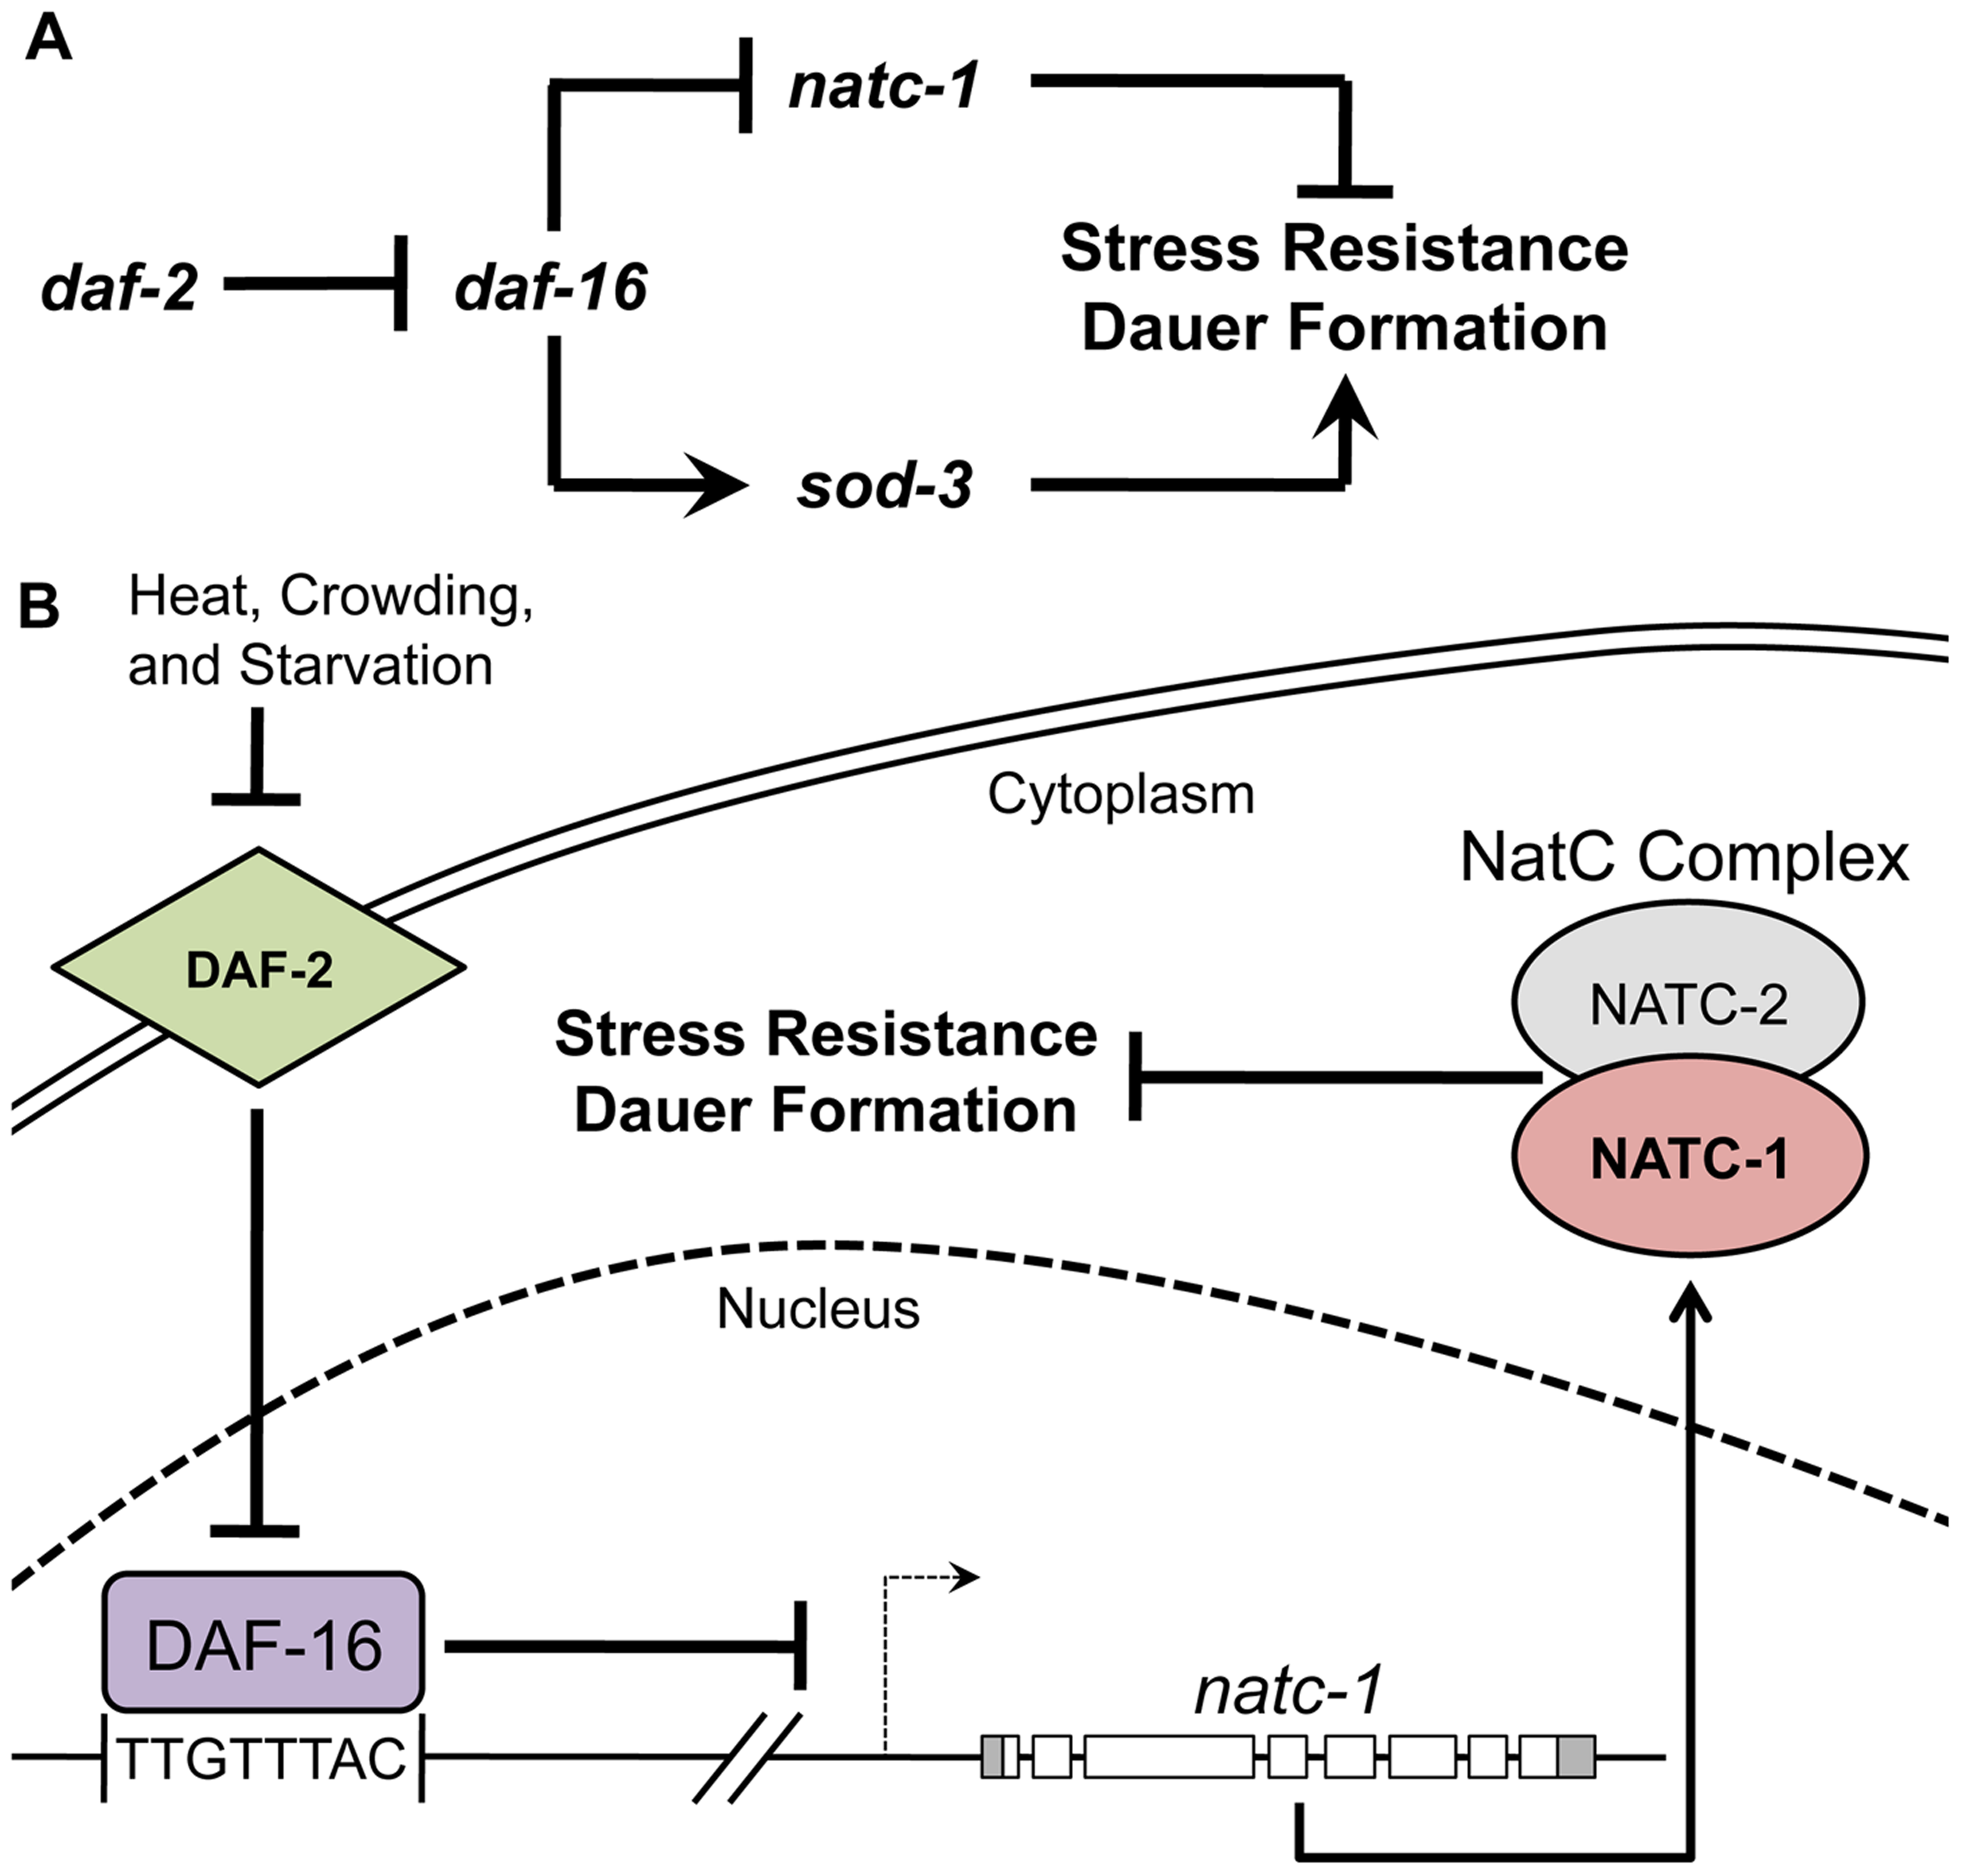 <i>natc-1</i> is a physiologically significant downstream effector of the insulin/IGF-1 signaling pathway.